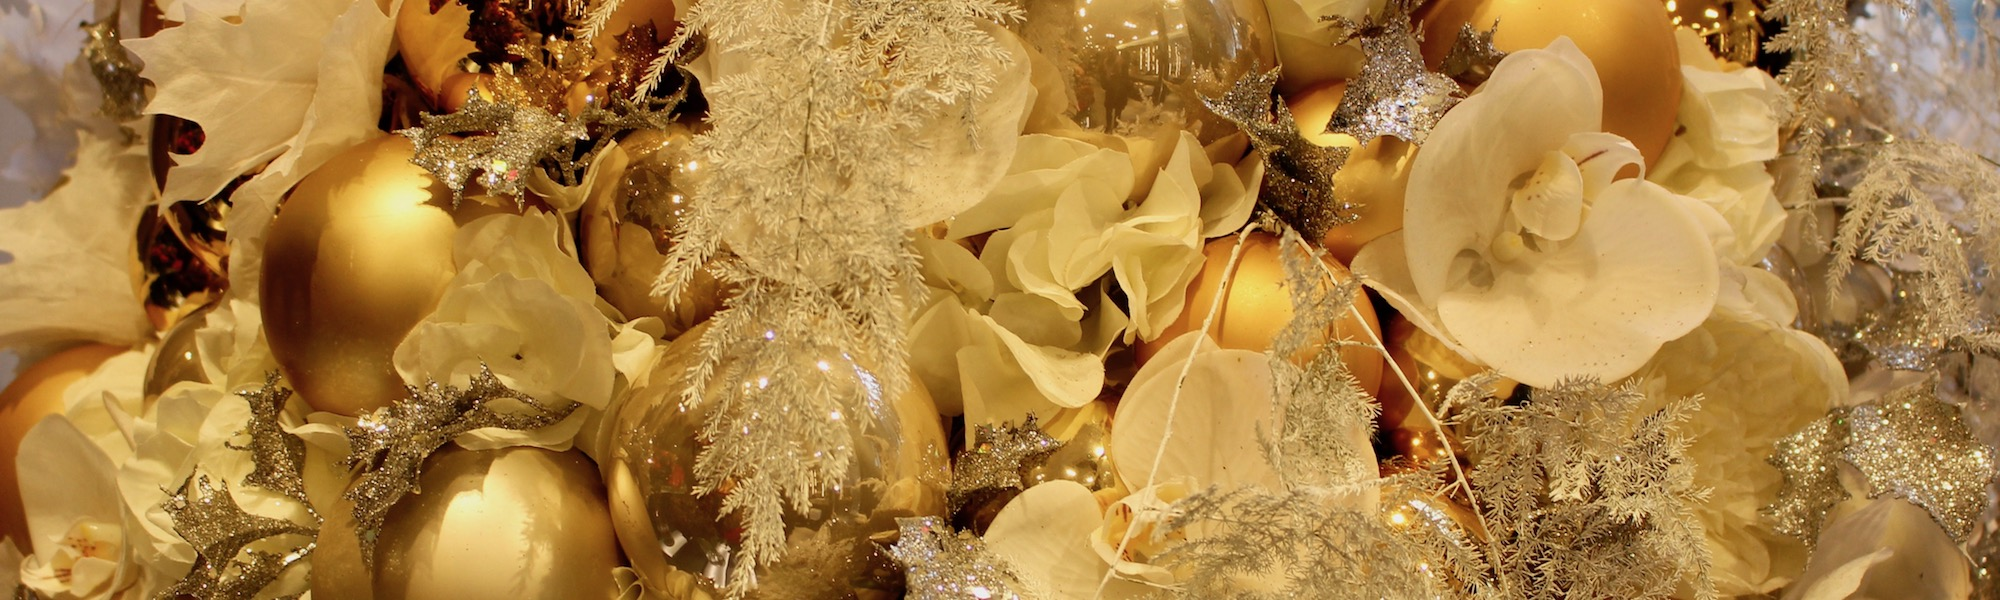 Christmas Decor Neill Strain Floral Couture Belgravia London